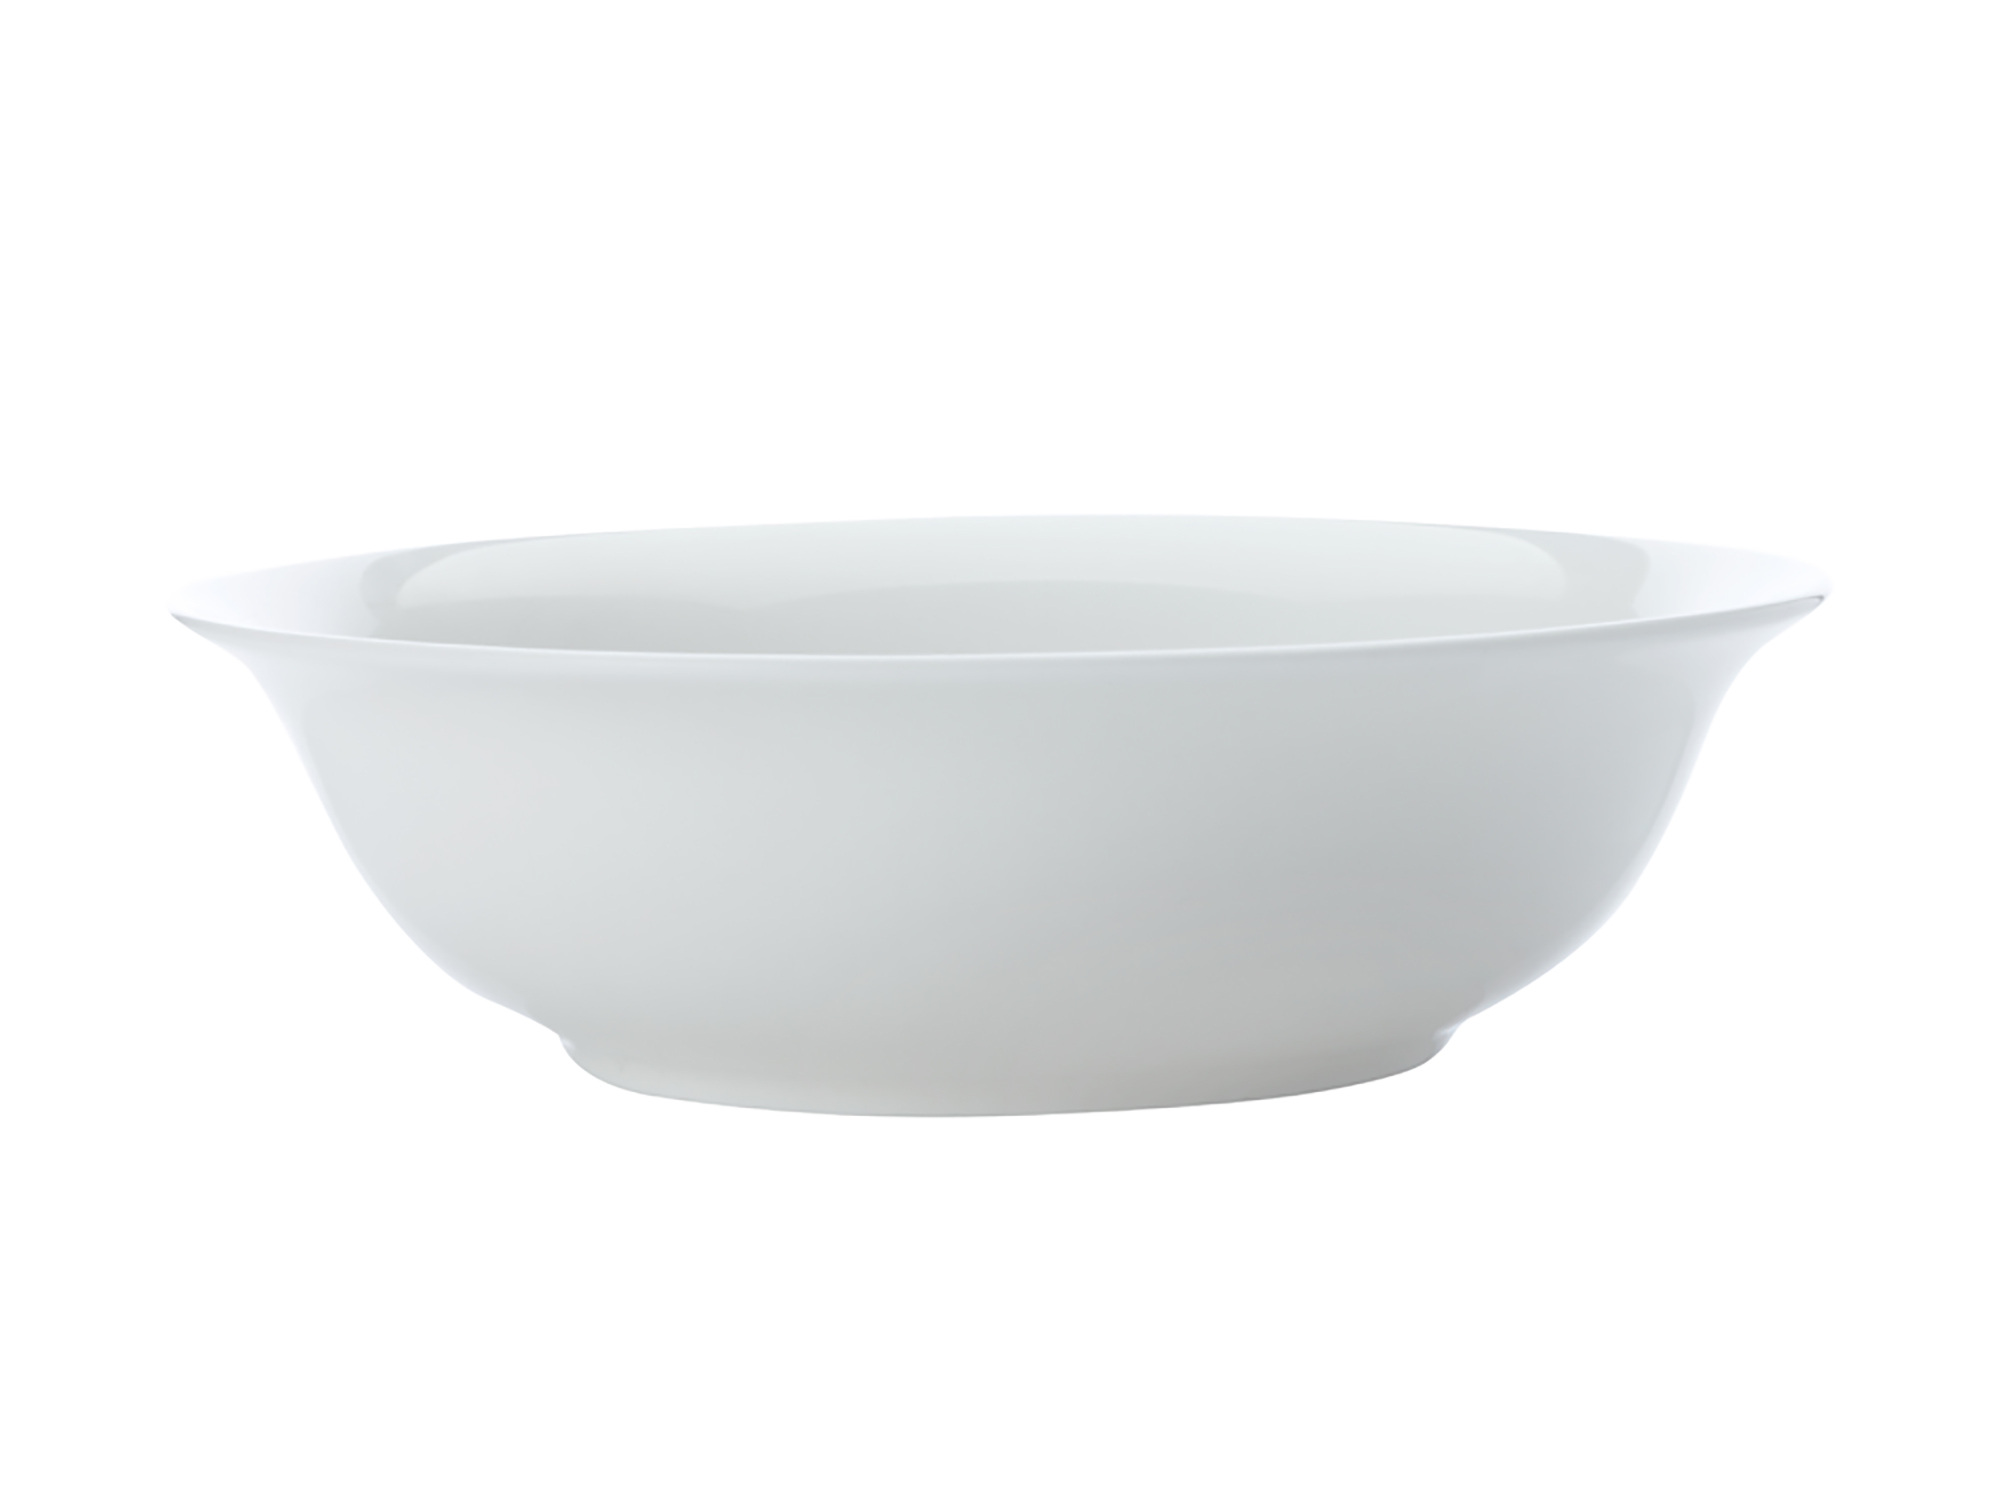 Maxwell & Williams Cashmere 18Cm Cereal Bowl